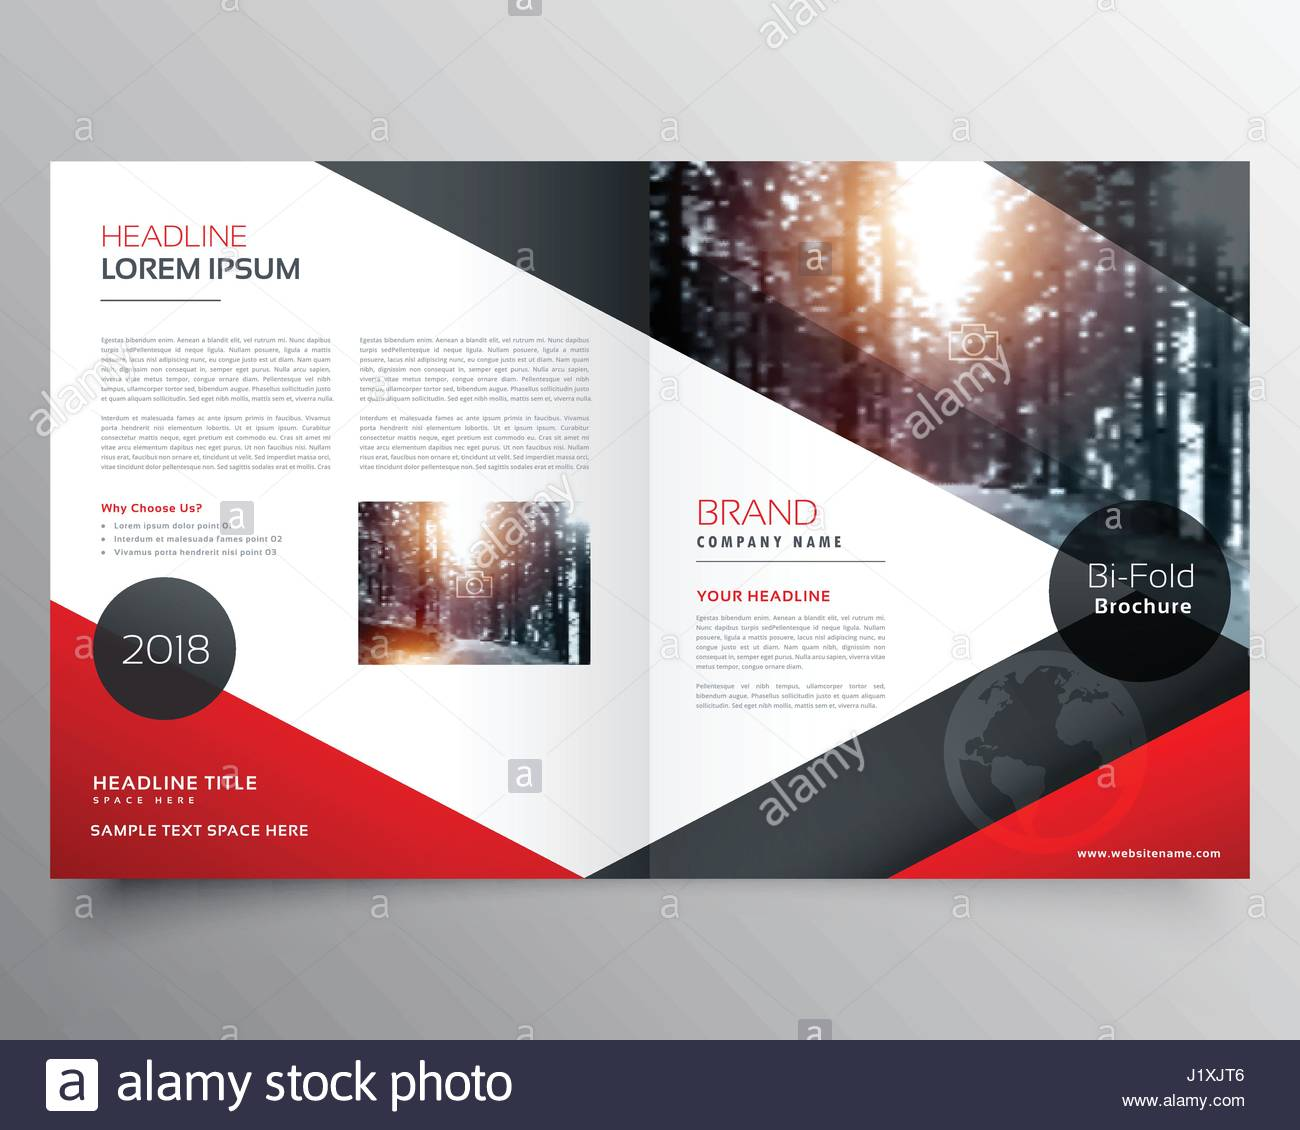 creative red and black bifold brochure or magazine cover page design stock vector art